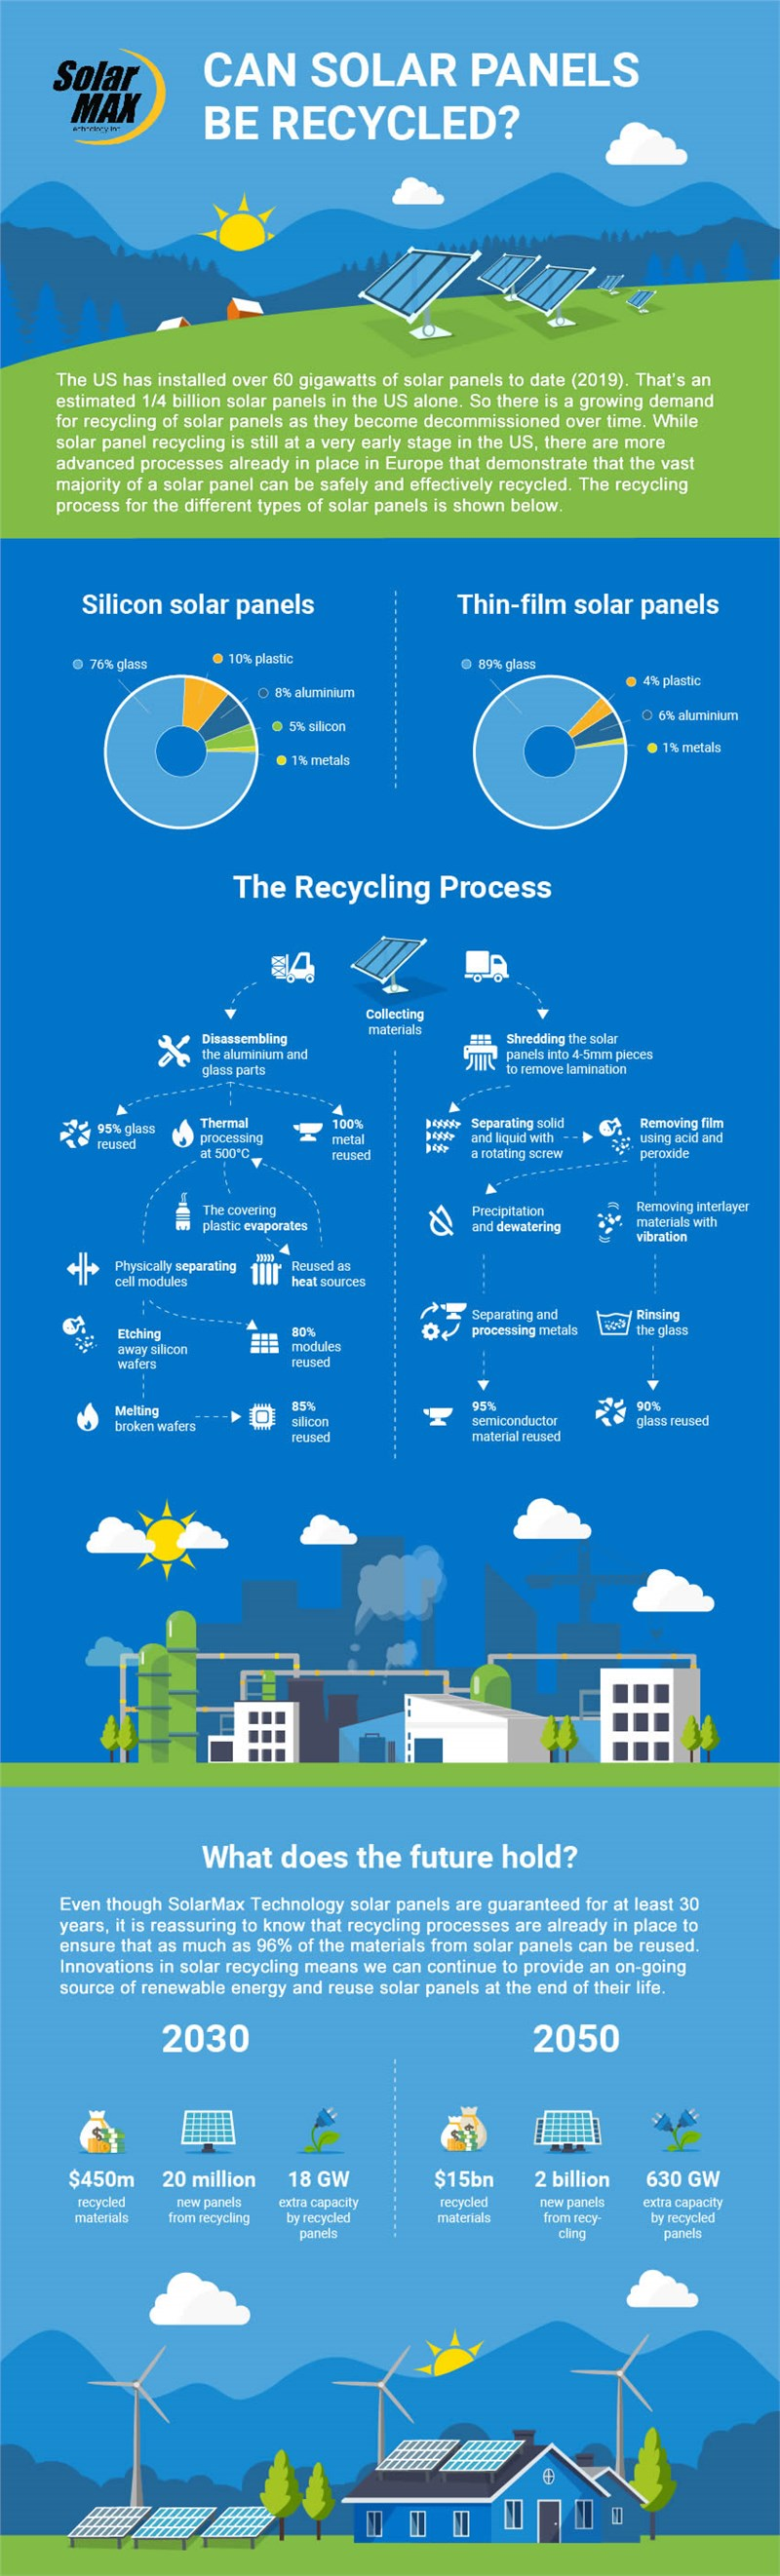 How Solar Panels are Recycled [Infographic]